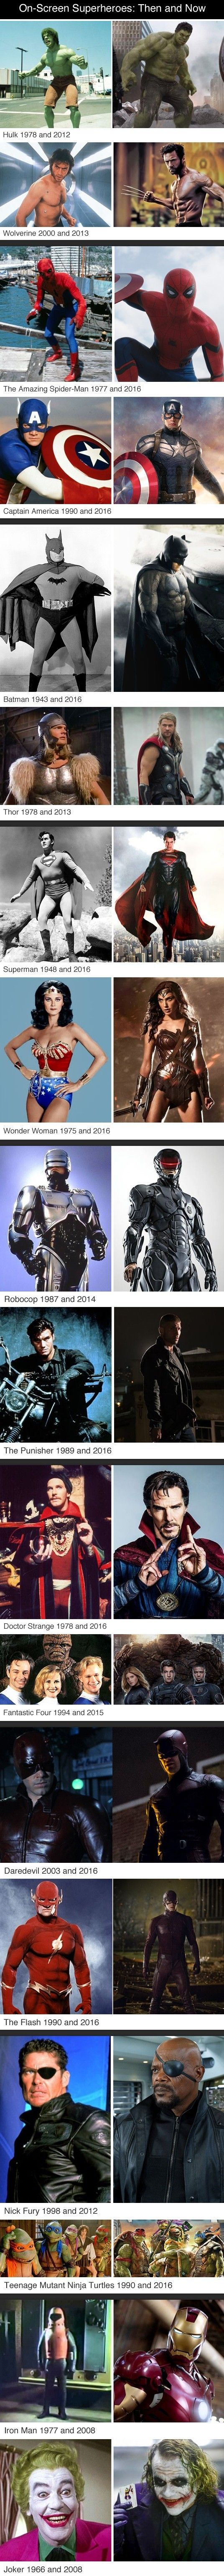 Superheroes Then And Now http://ibeebz.com